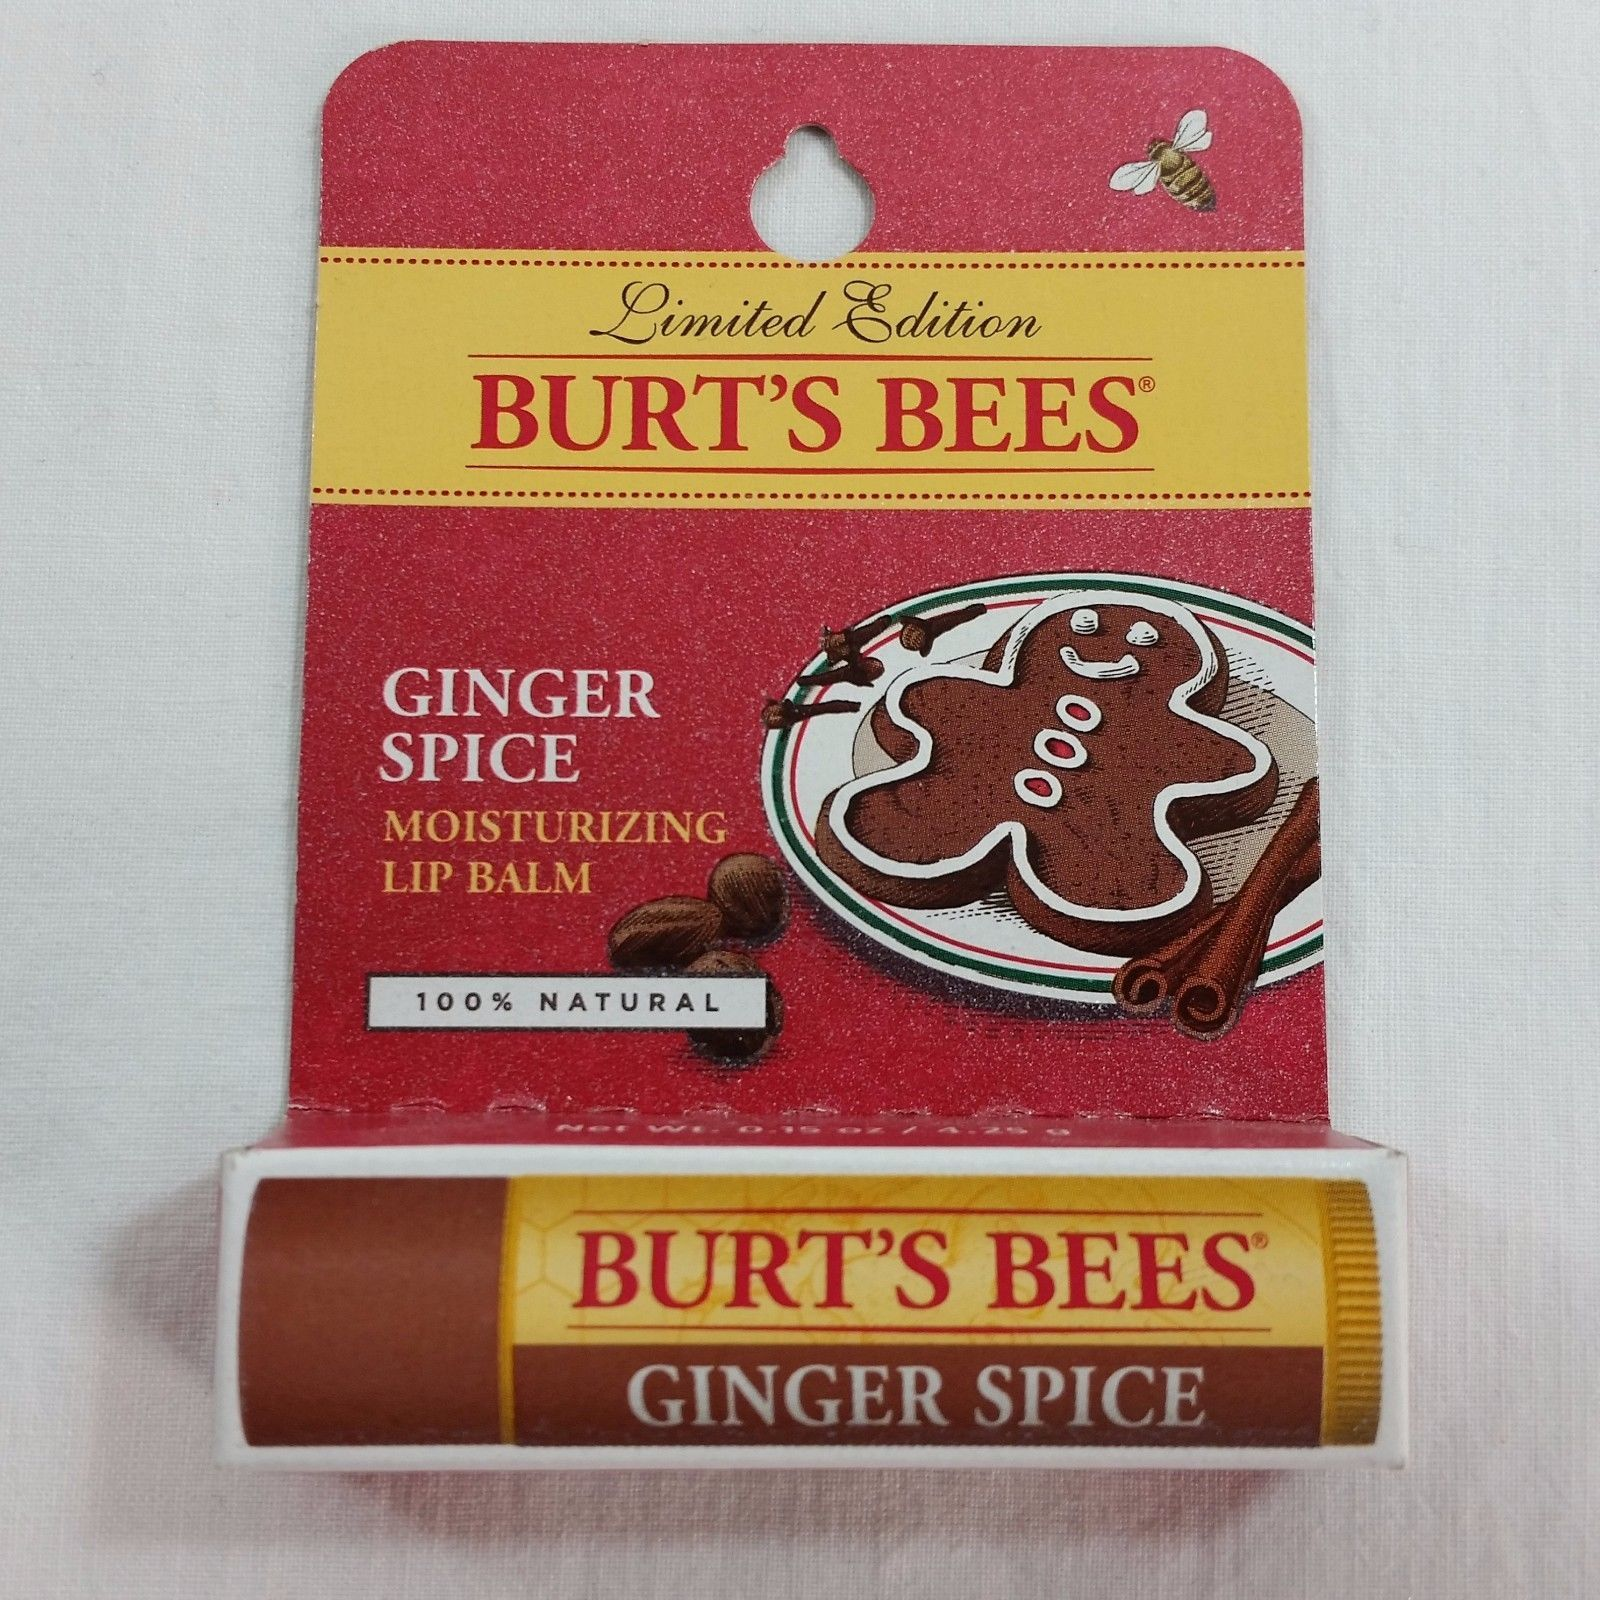 Burts Bees Lot of Ginger Spice Lip Balm x20 Wholesale Limited Edition